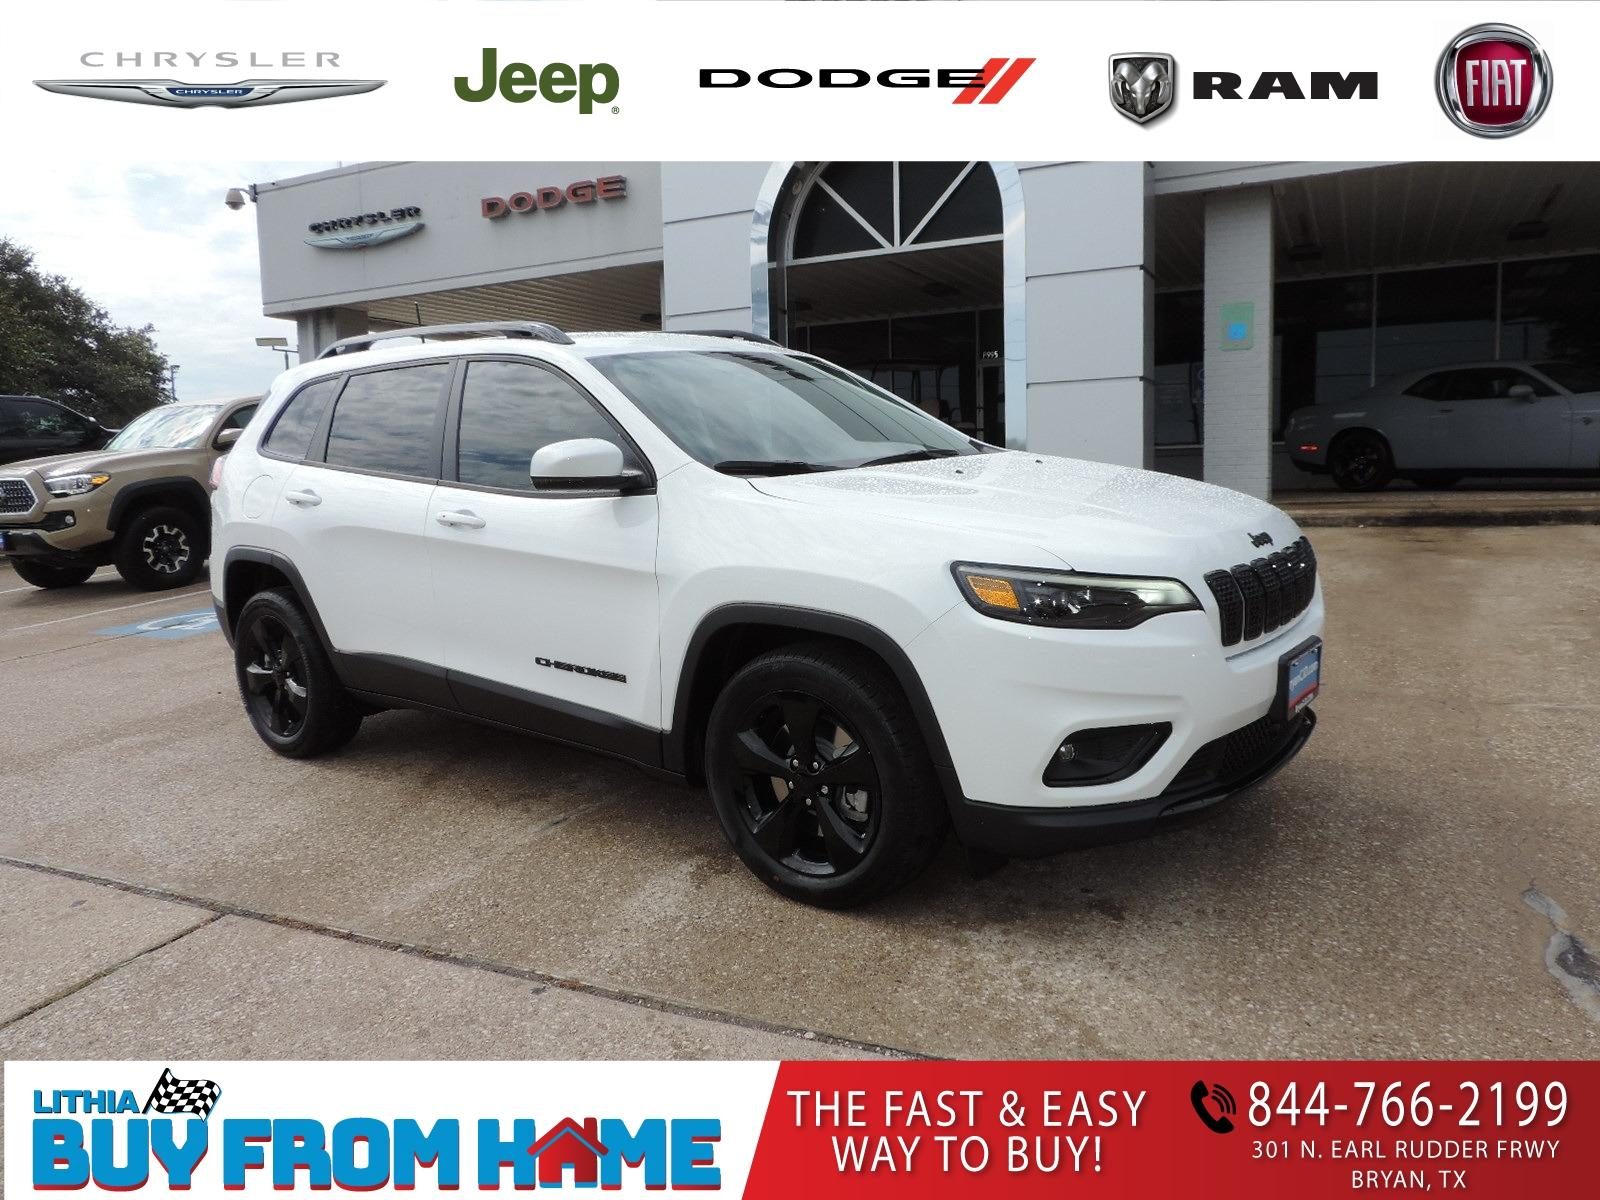 New 2021 Jeep Cherokee Sport Utility Altitude Fwd Bright White For Sale Near Temple Tx Stock Md112070